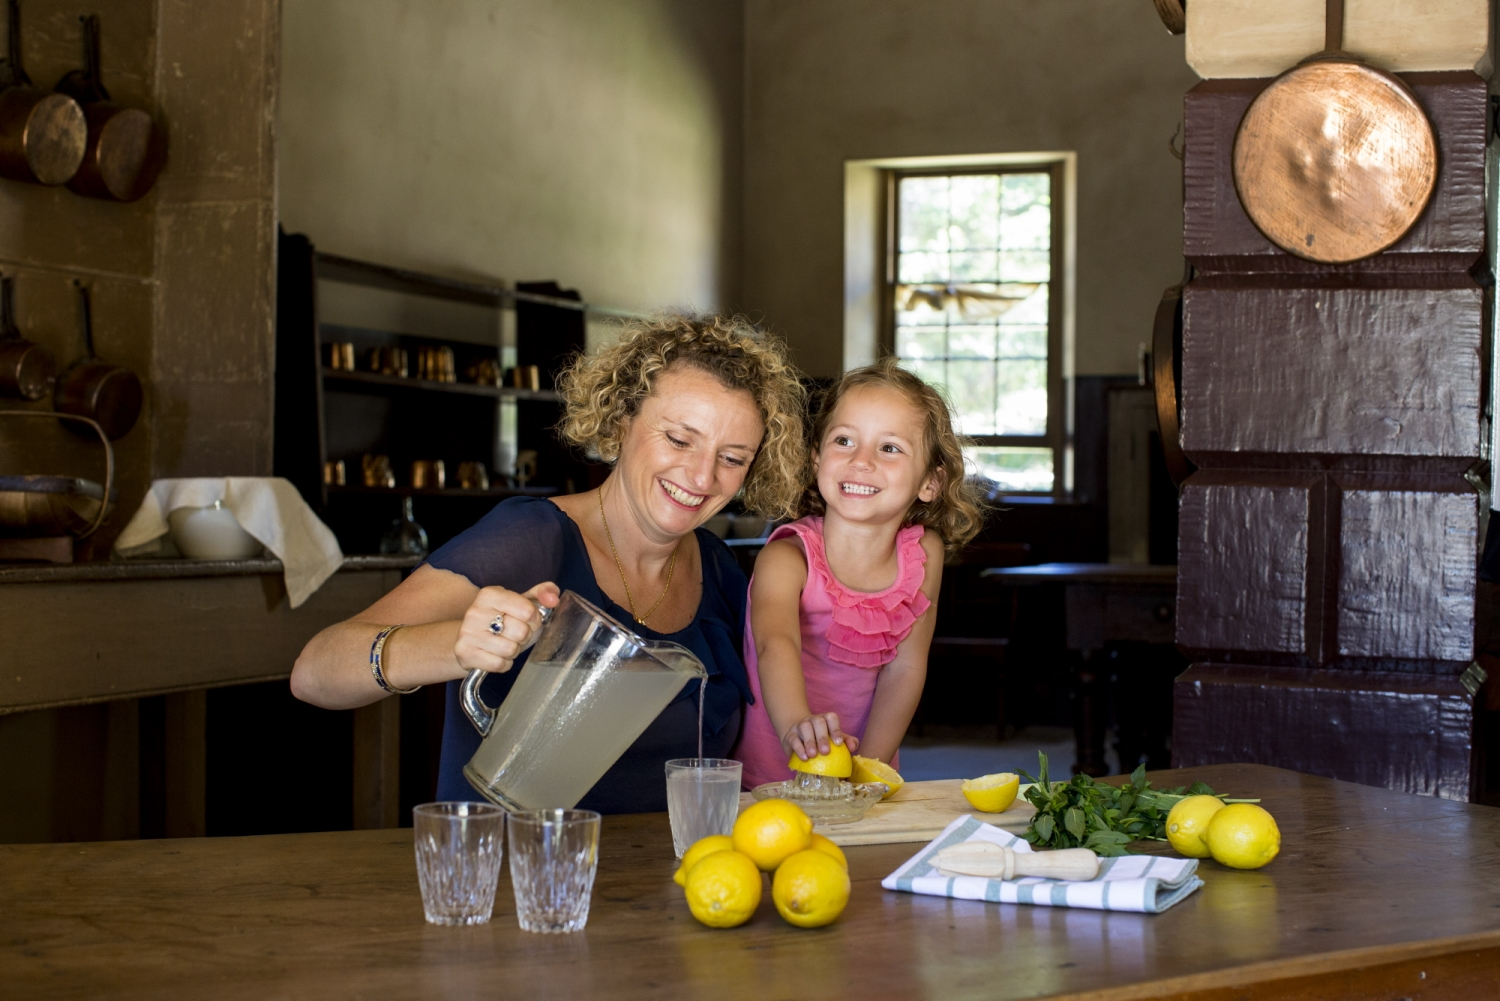 Woman and child seated at large wooden table with makings of lemonade; the woman is pouring lemonade out of a jug.